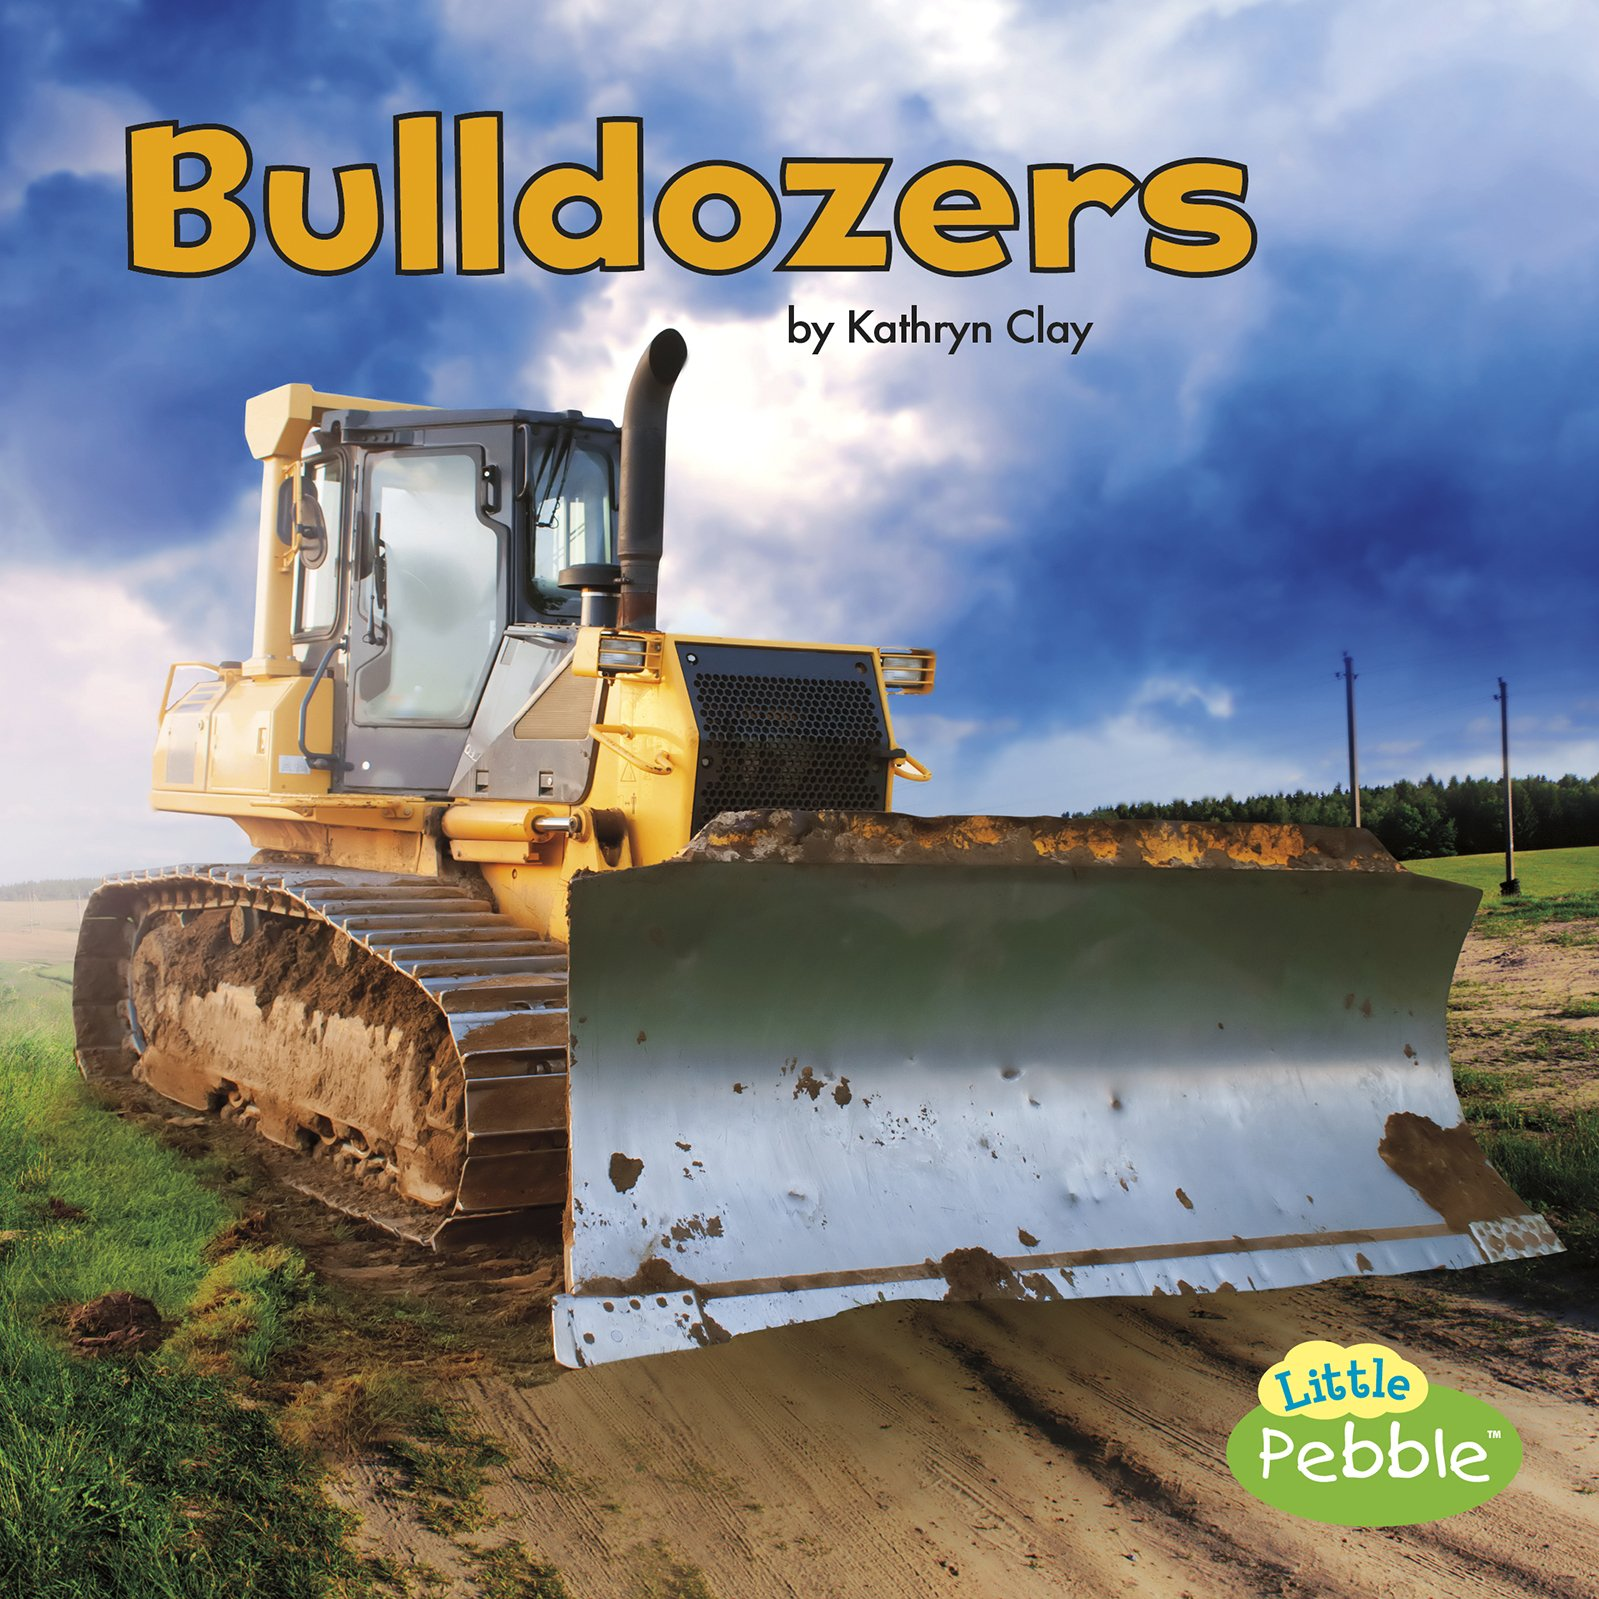 Image result for bulldozers kathryn clay